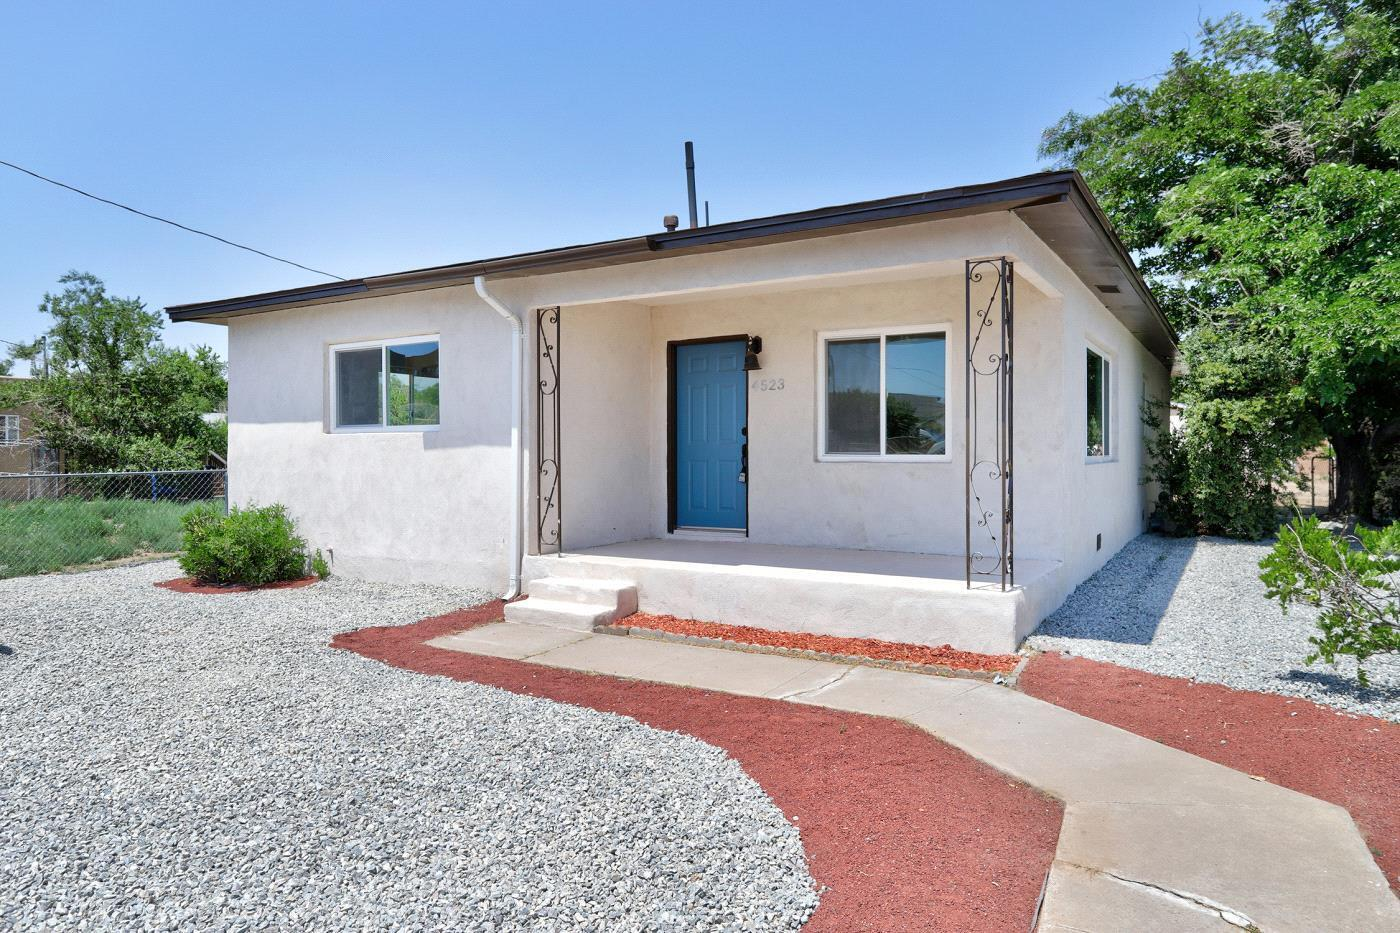 COME SEE THIS BEAUTIFULLY Remodeled single story home in the highly desired North Valley!! Interior complete with DESIGNER SELECTED TWO TONE paint, GORGEOUS refinished HARDWOOD floors, and a DAZZLING Lighting Package!! CHEFS DREAM Kitchen features TONS of counter space, GRANITE COUNTERTOPS and brand NEW Stainless Steel Appliances!! Master Suite features a spacious room, and a WALK-IN CLOSET!! Don't forget the NEW ROOF, new water heater, Energy Efficient New Windows and new exterior stucco!! Conveniently located near several schools, parks, and shopping centers!!  Don't Miss out on your chance to own this true Gem!! SPOTLESS AND MOVE IN READY!!